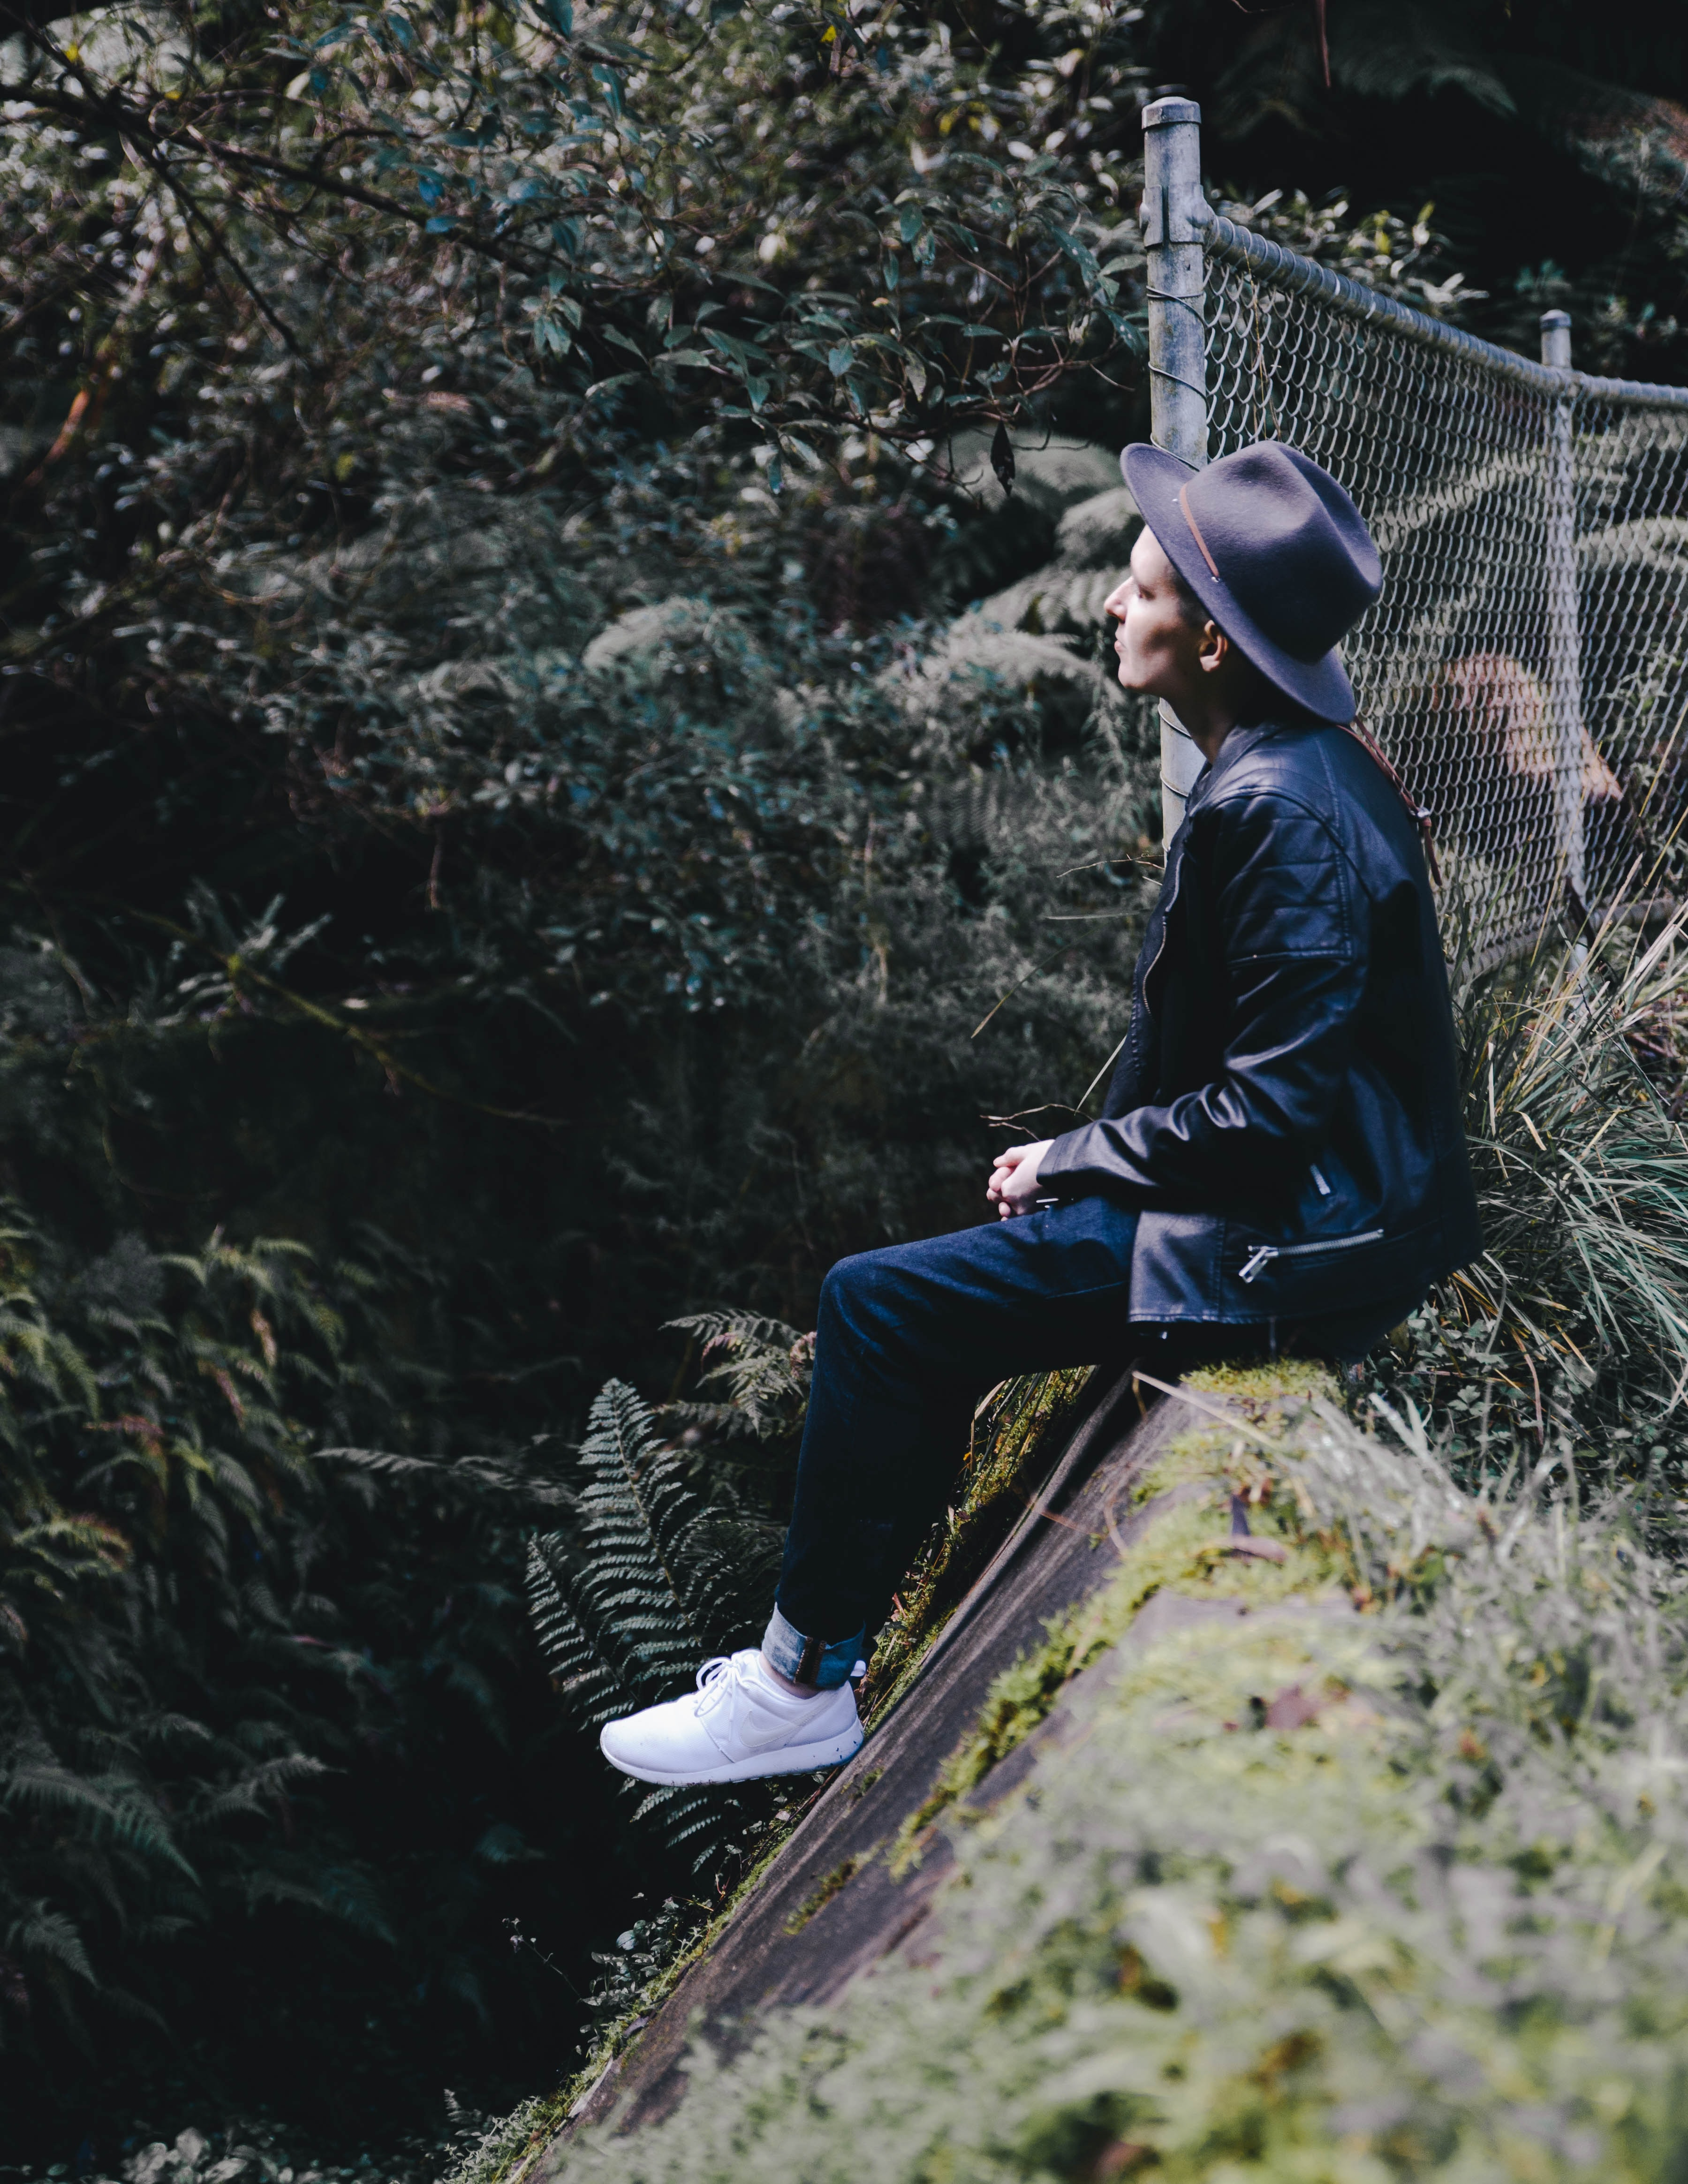 A person in a hat and white sneakers sits by a fence on a steep ledge